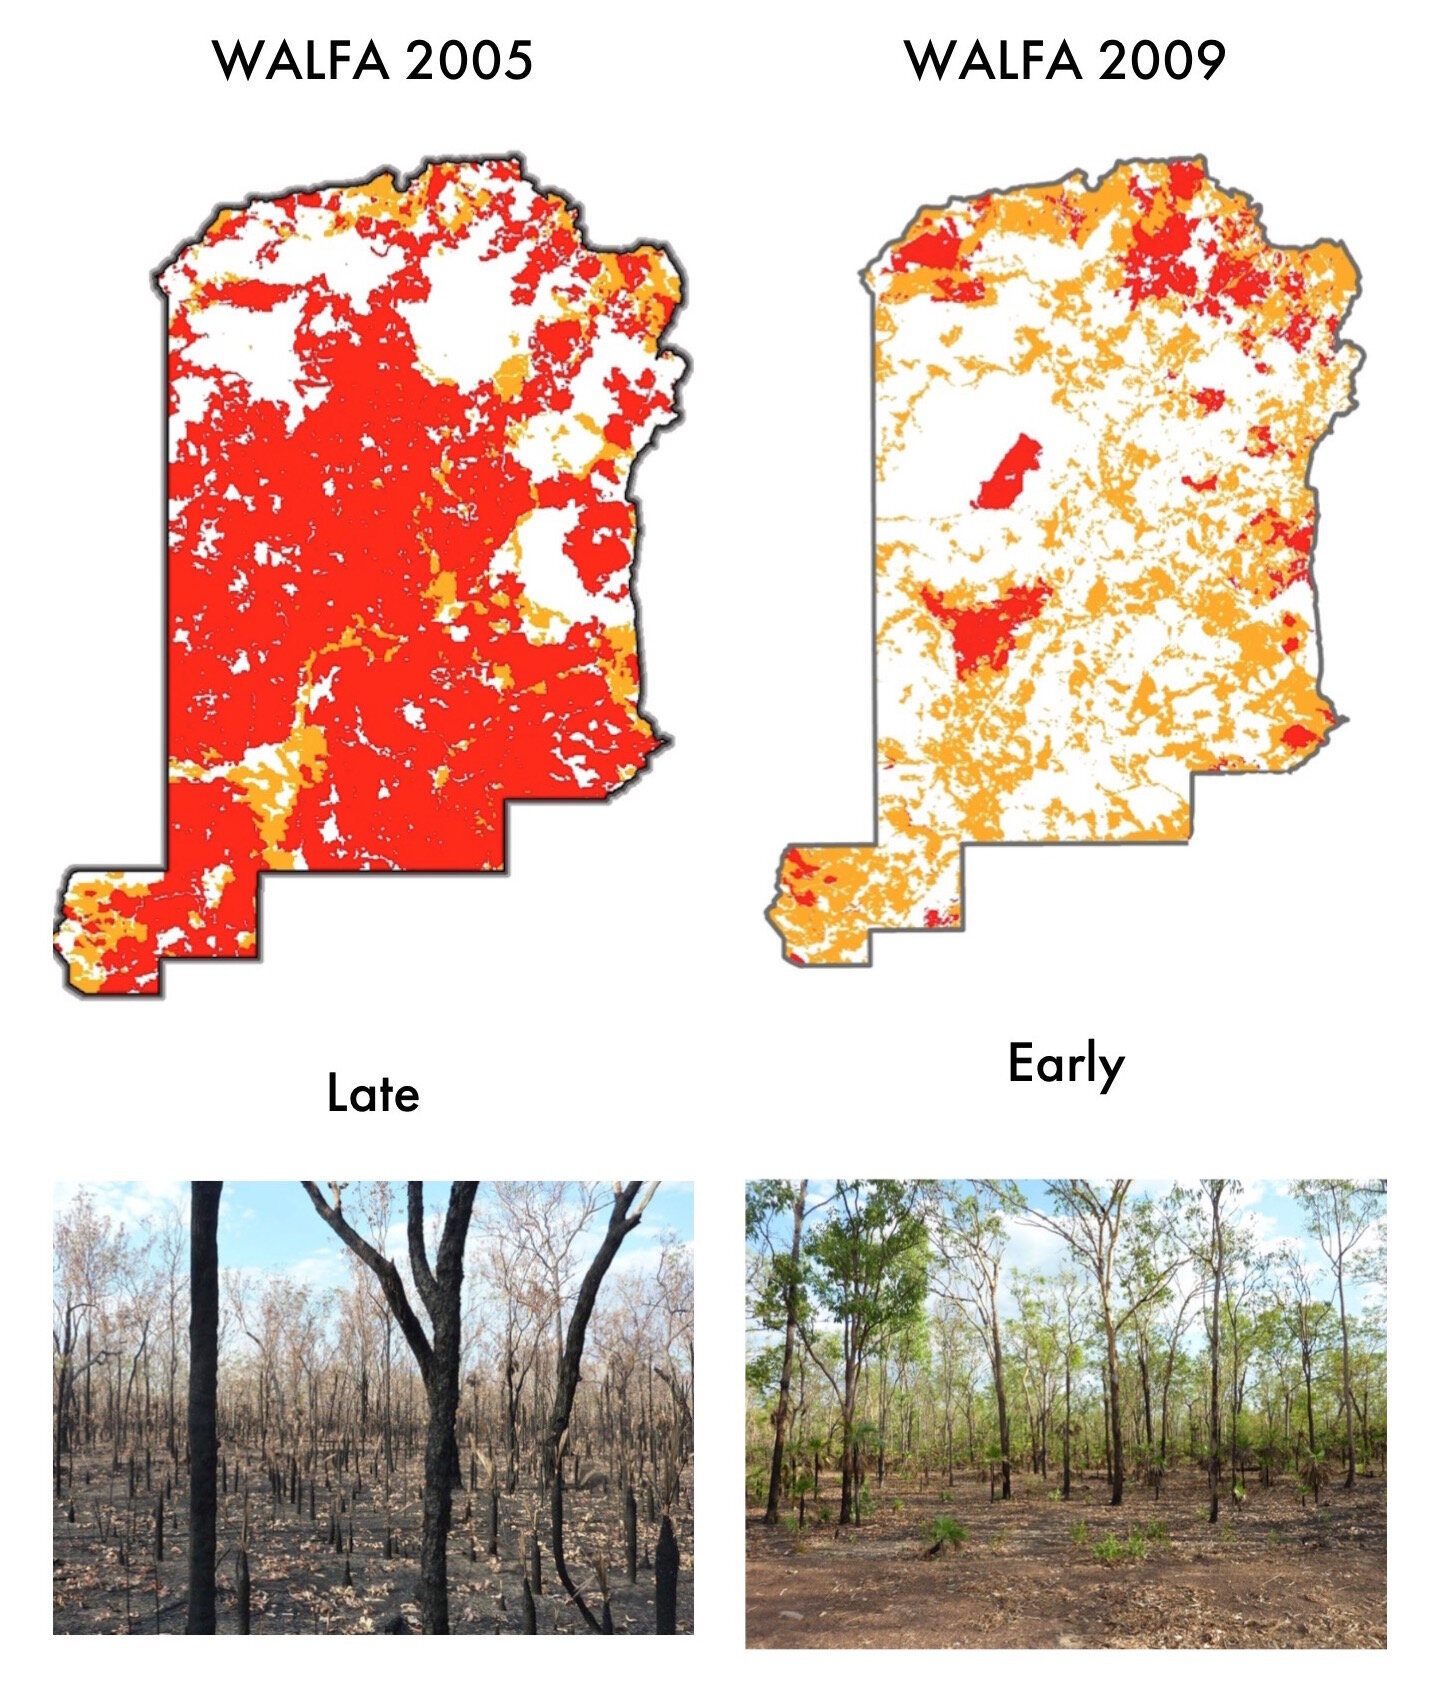 WALFA Project area before reintroduction of Indigenous Fire Management in 2005 (top left), and after in 2009 (top right), with orange areas burnt early and red late.